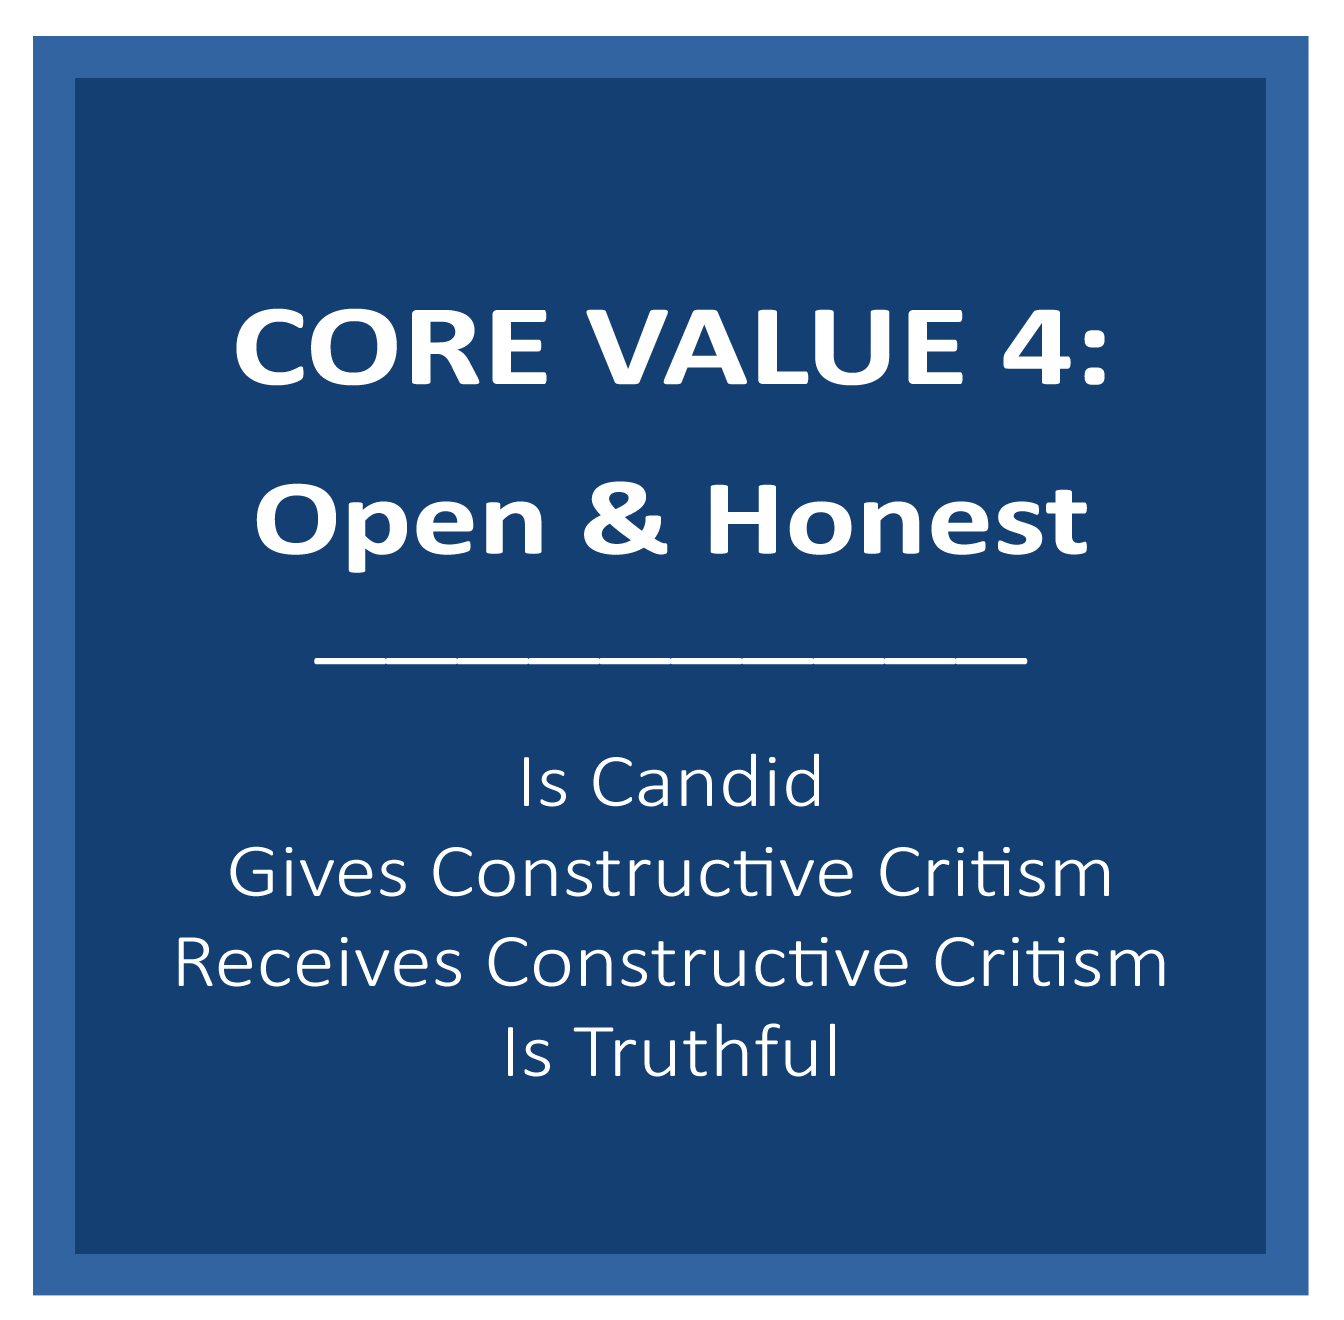 corevalue4.png